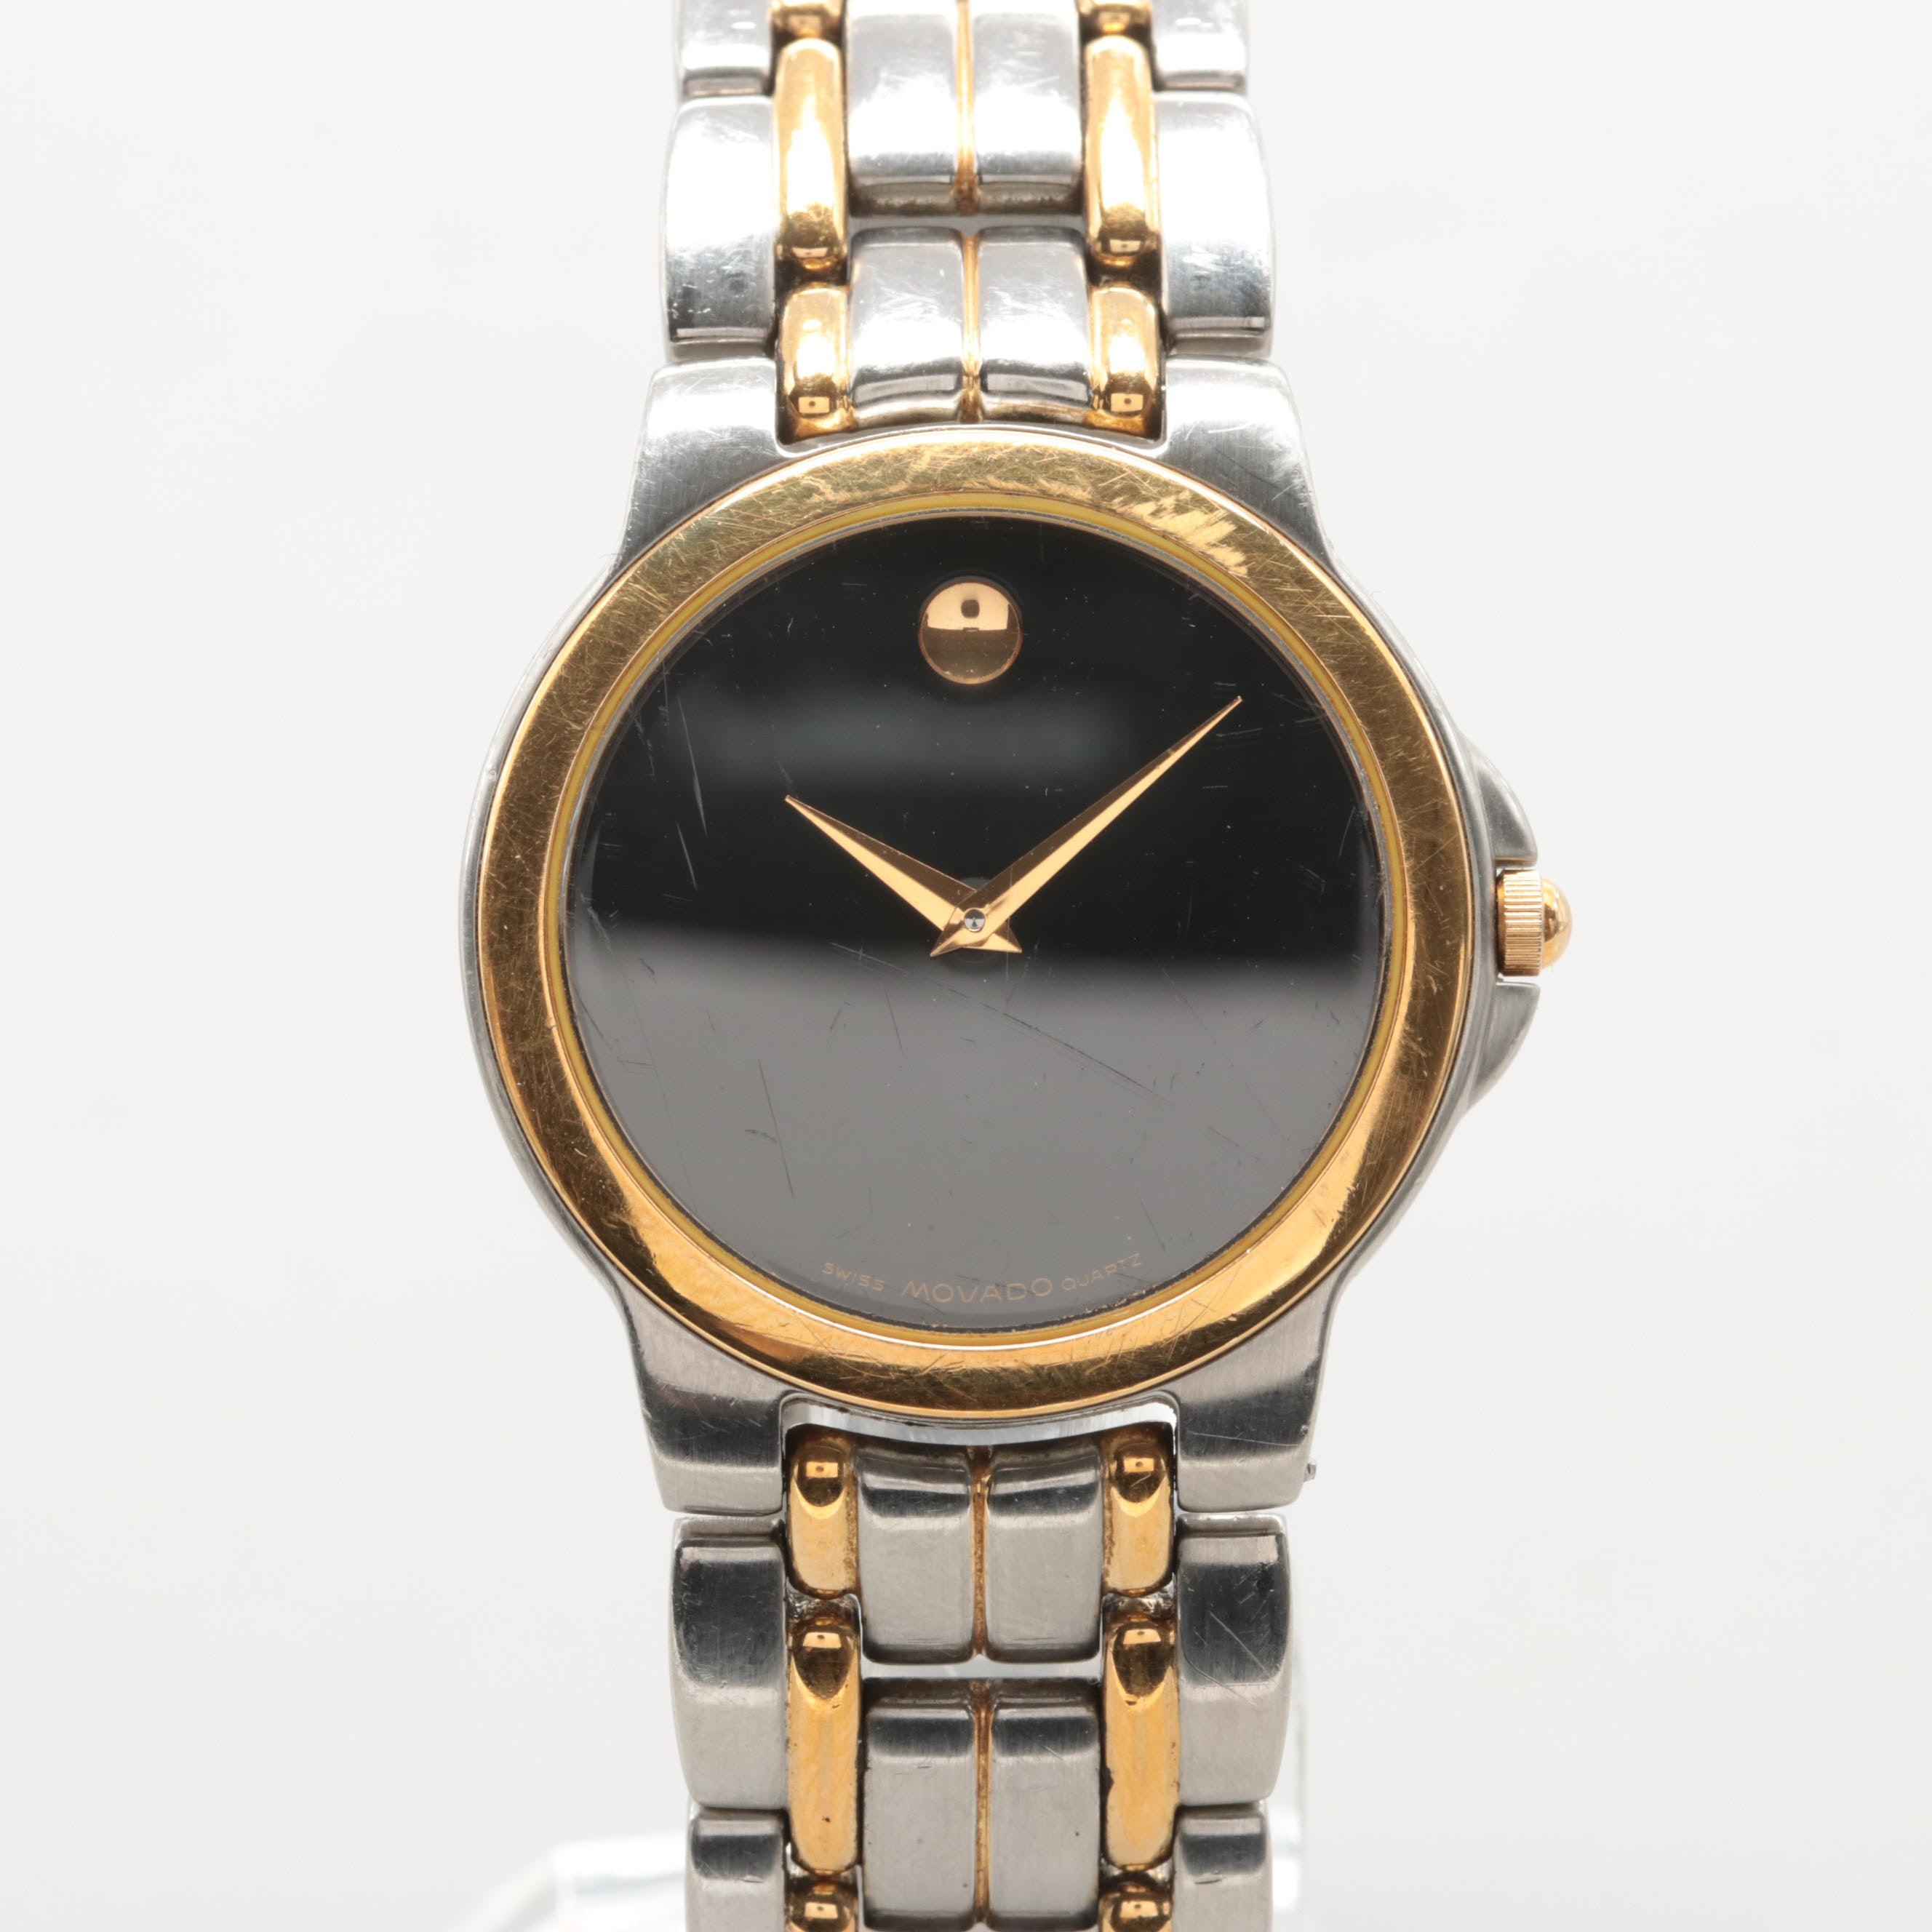 Movado Two-Tone Stainless Steel Museum Piece Wristwatch With Black Dial